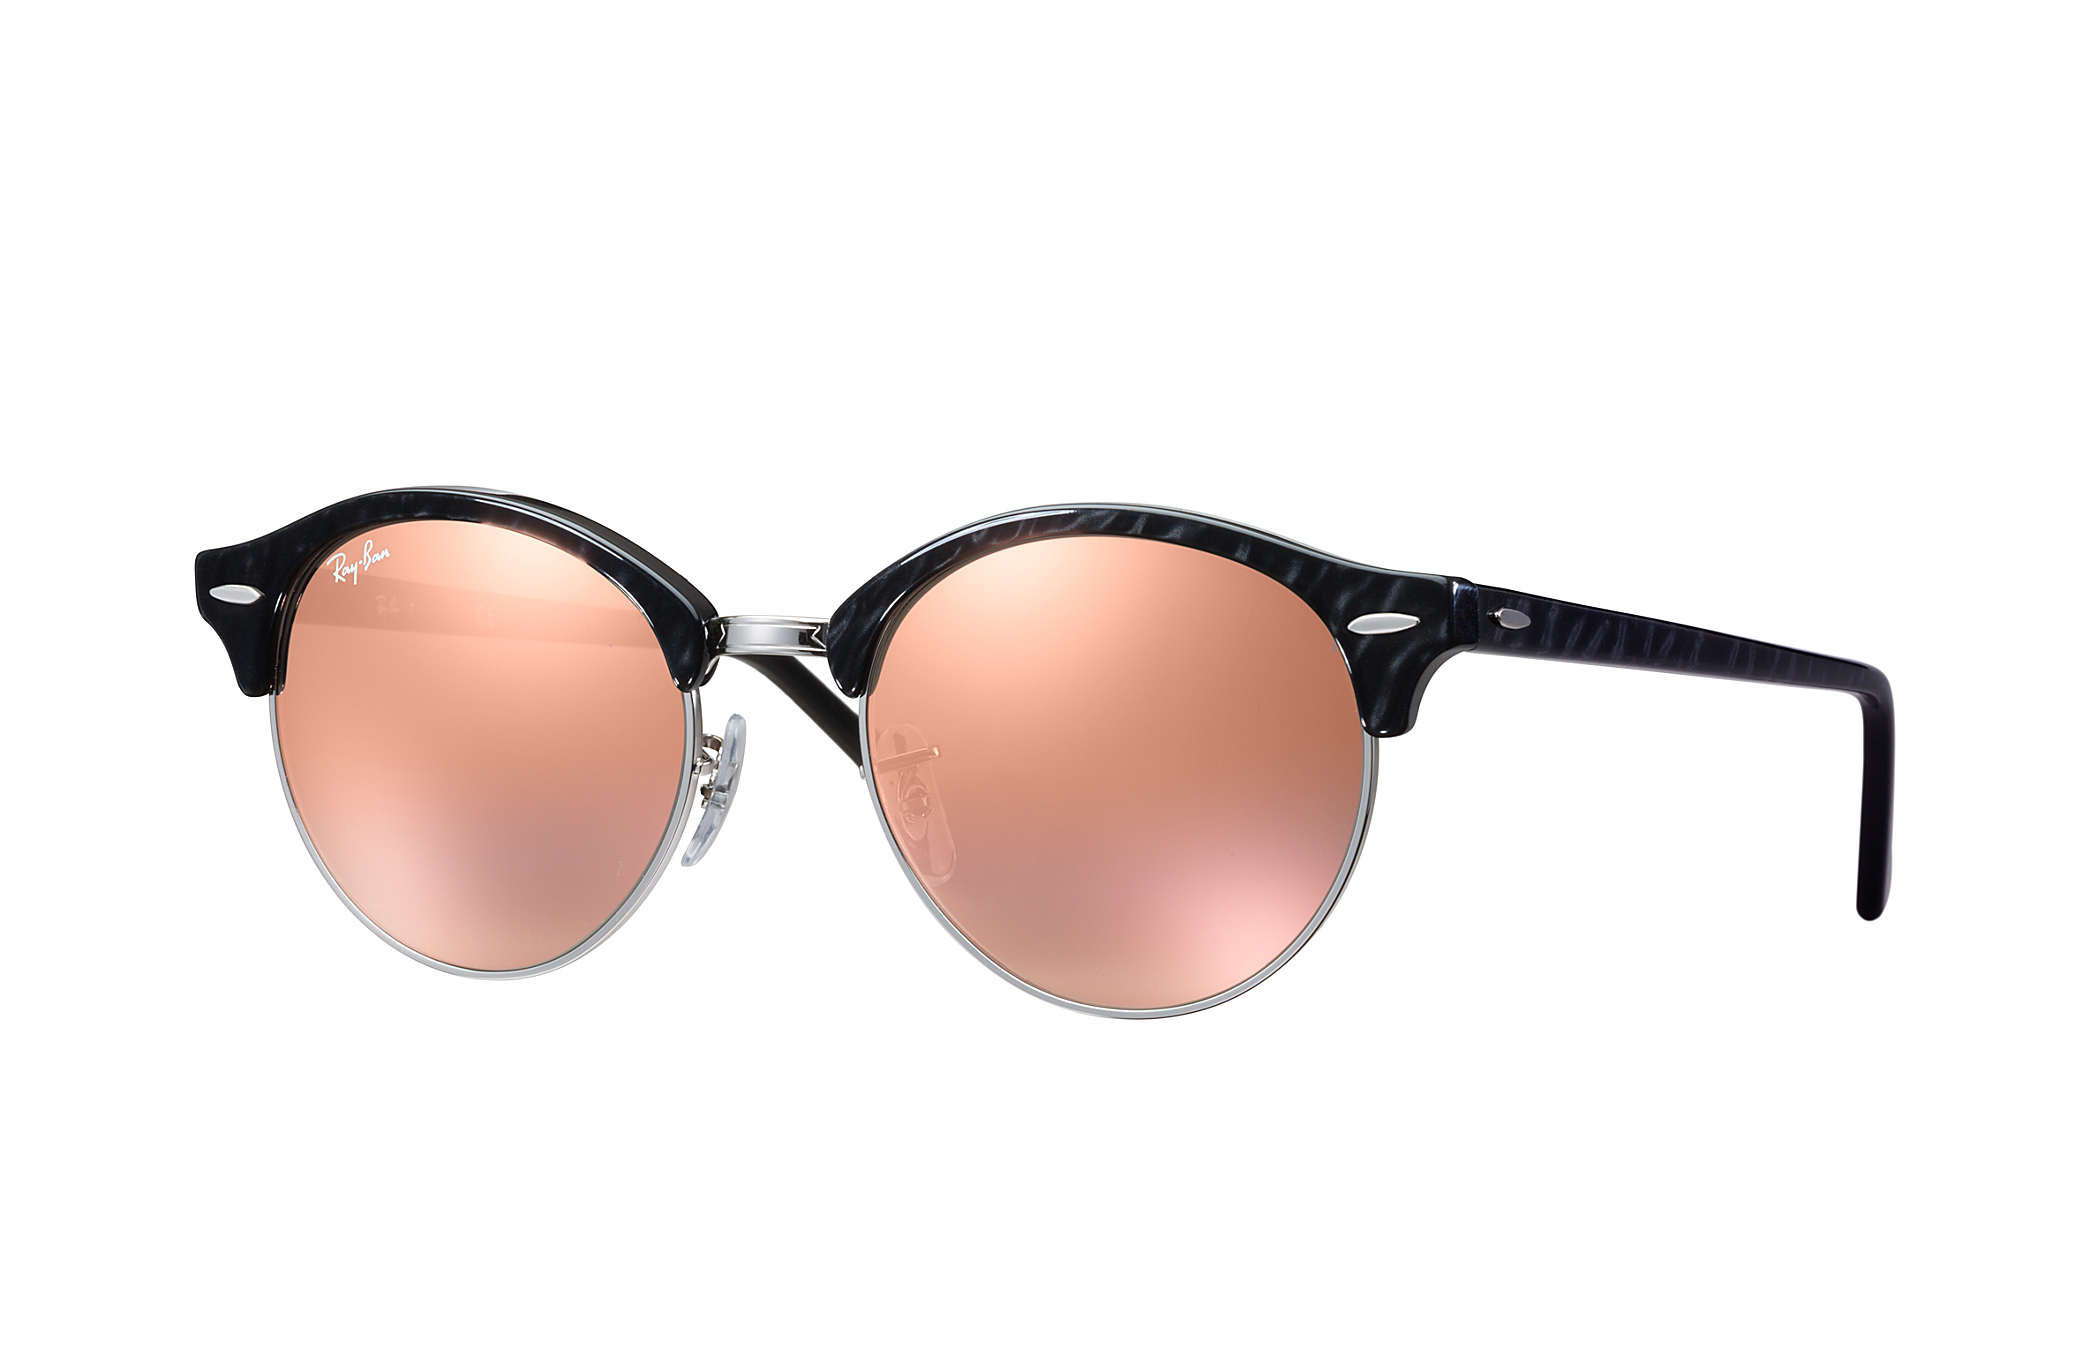 Ray-Ban Clubround Classic - Copper Flash